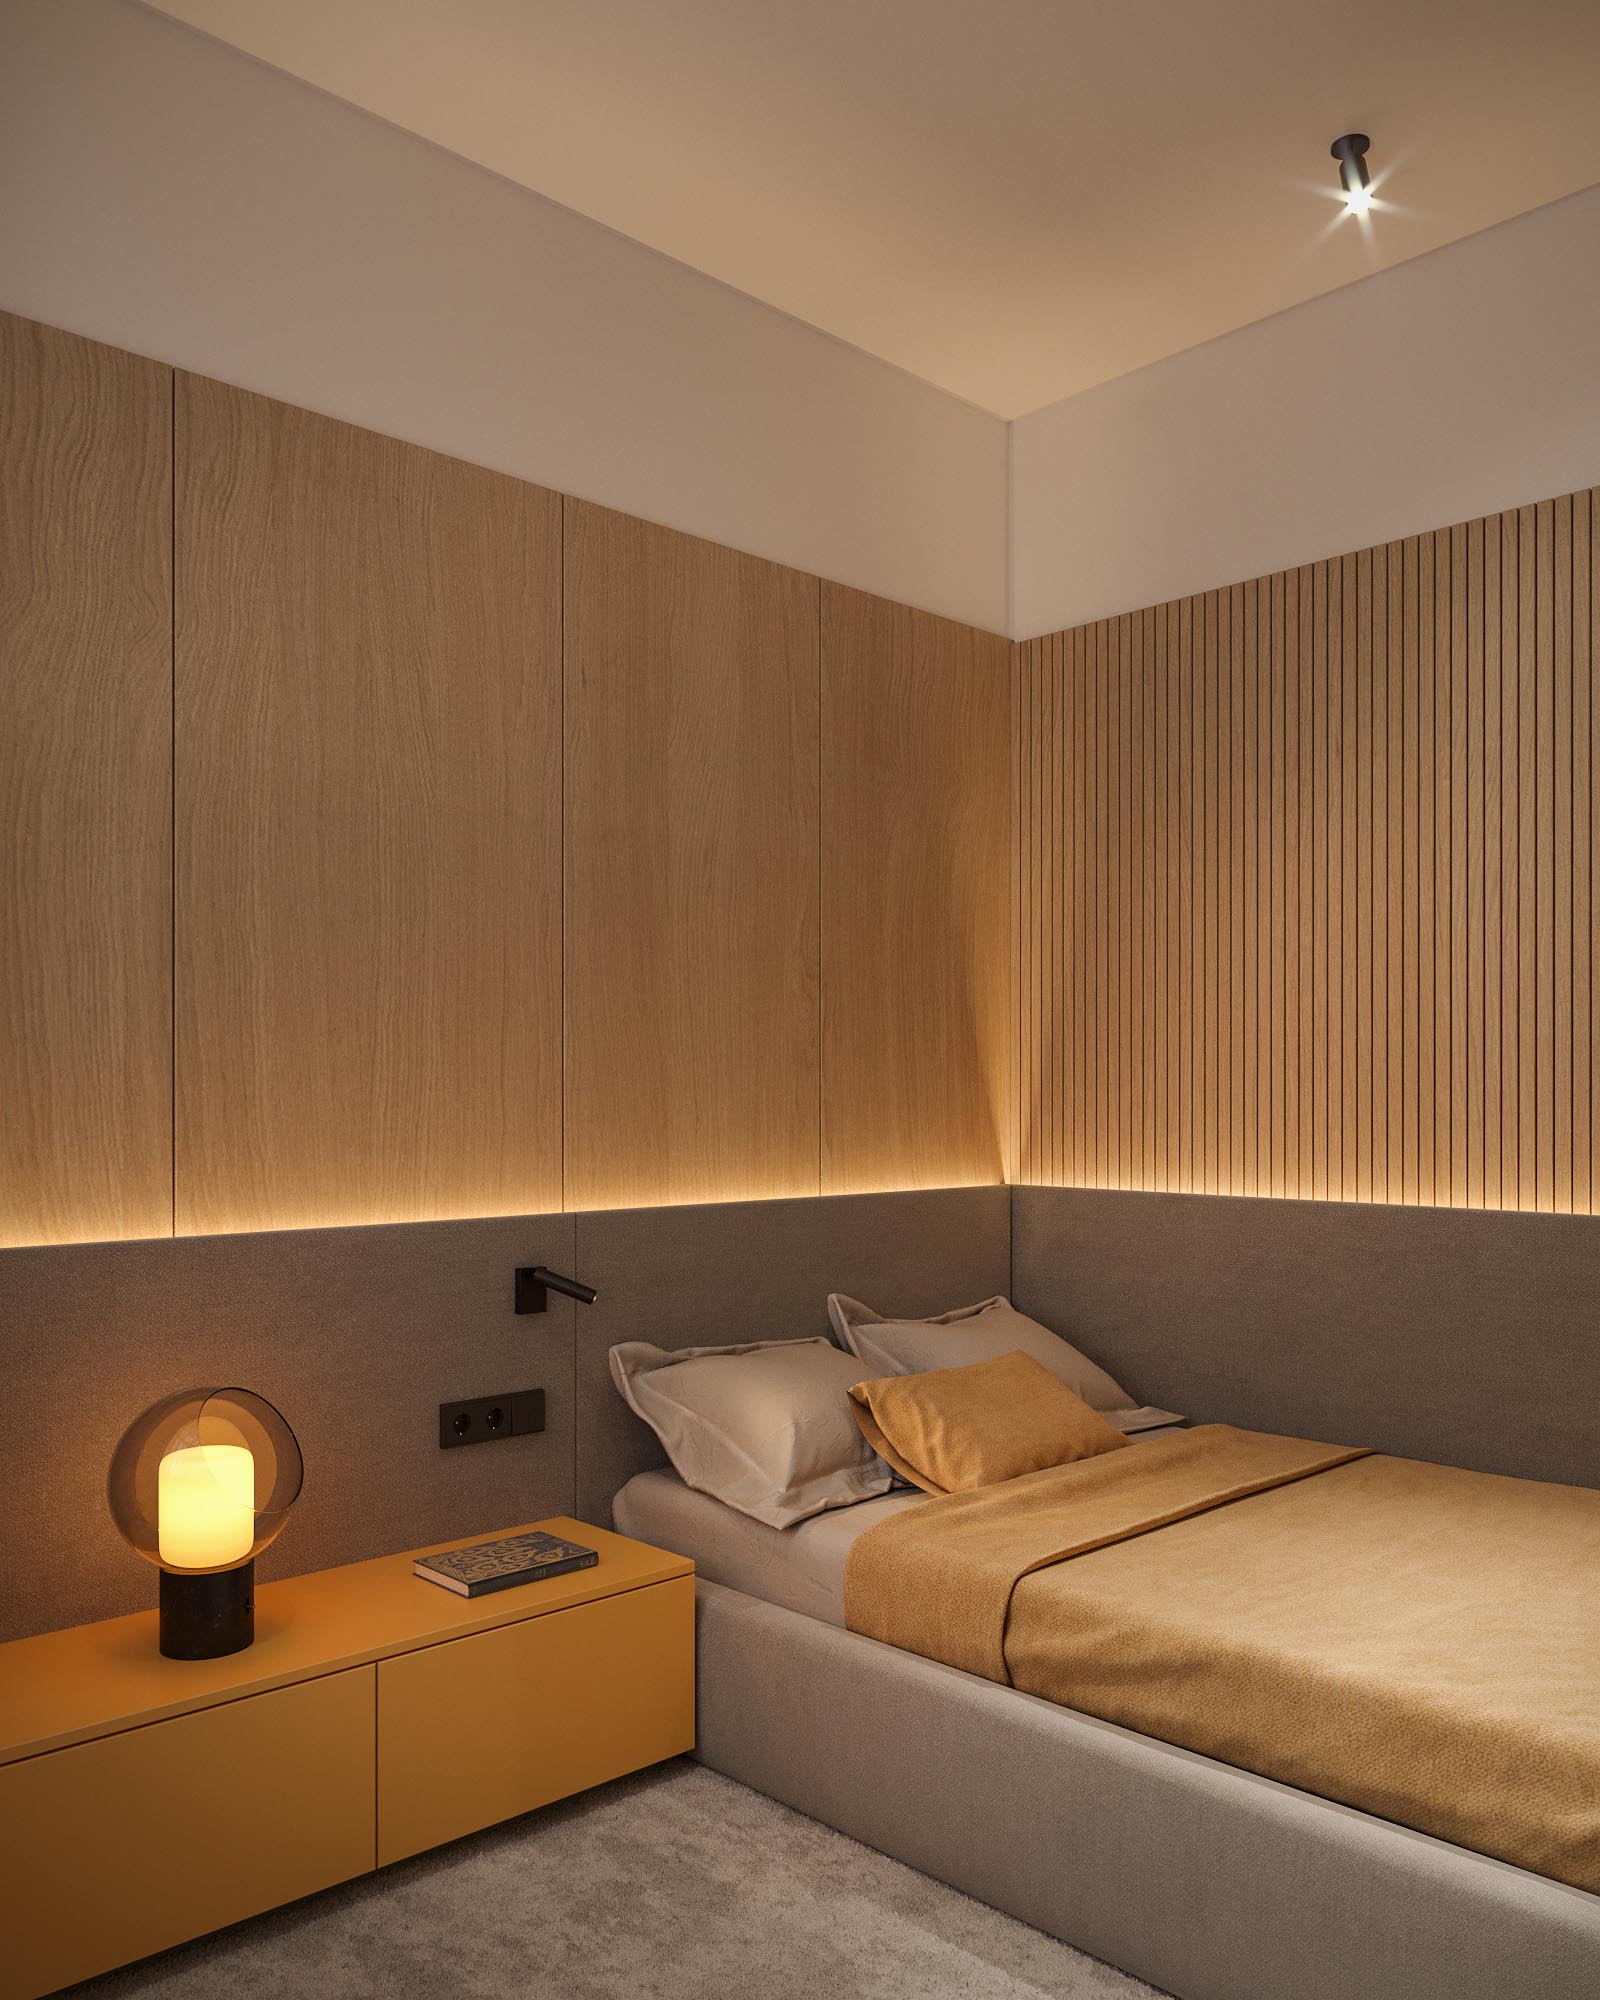 A modern bedroom with a backlit headboard and partial wood accent wall.